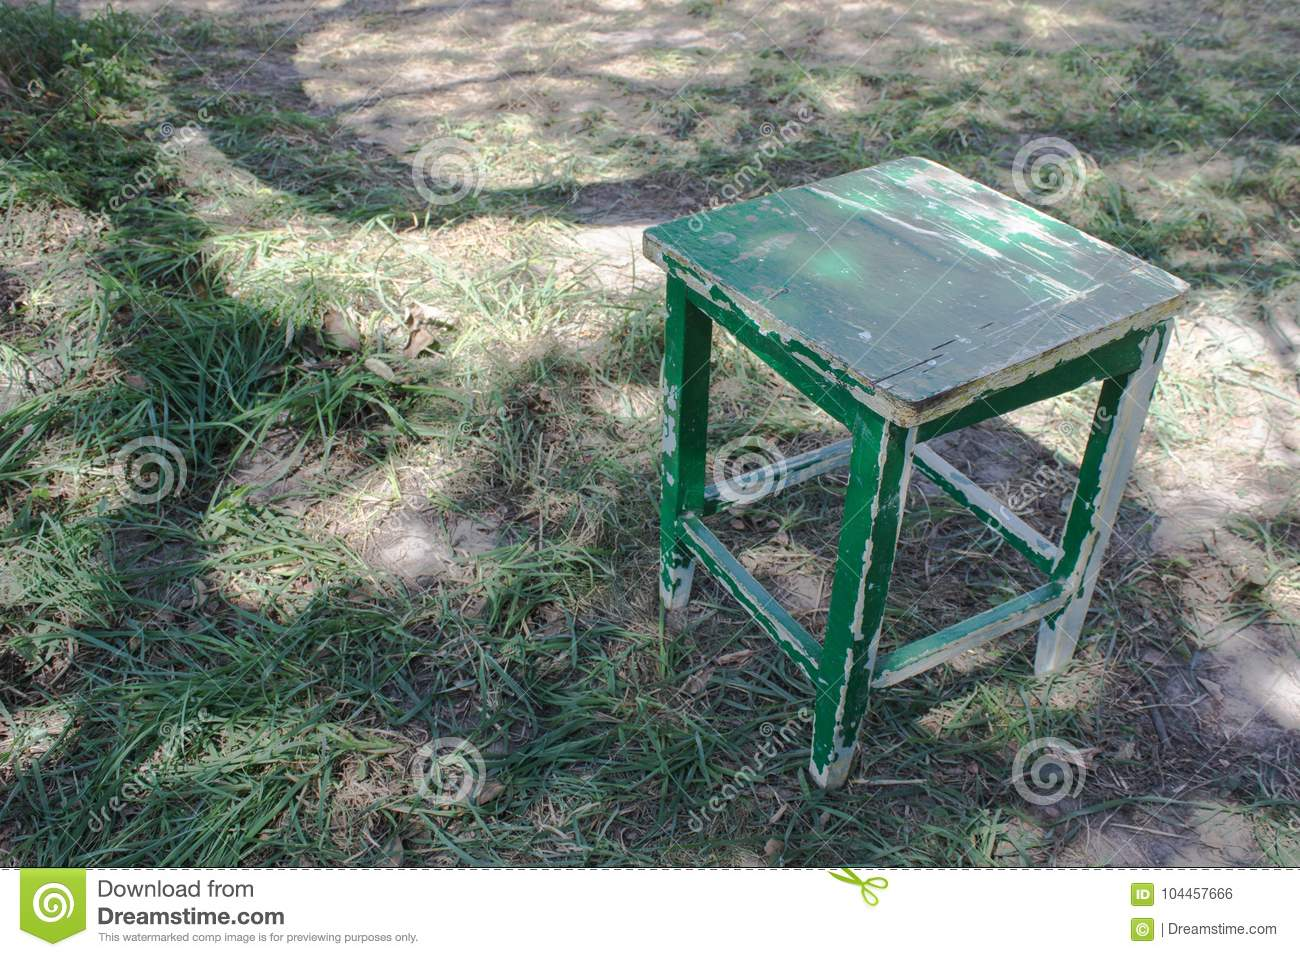 Miraculous Old Stool With Peeling Paint In The Garden Stock Photo Lamtechconsult Wood Chair Design Ideas Lamtechconsultcom